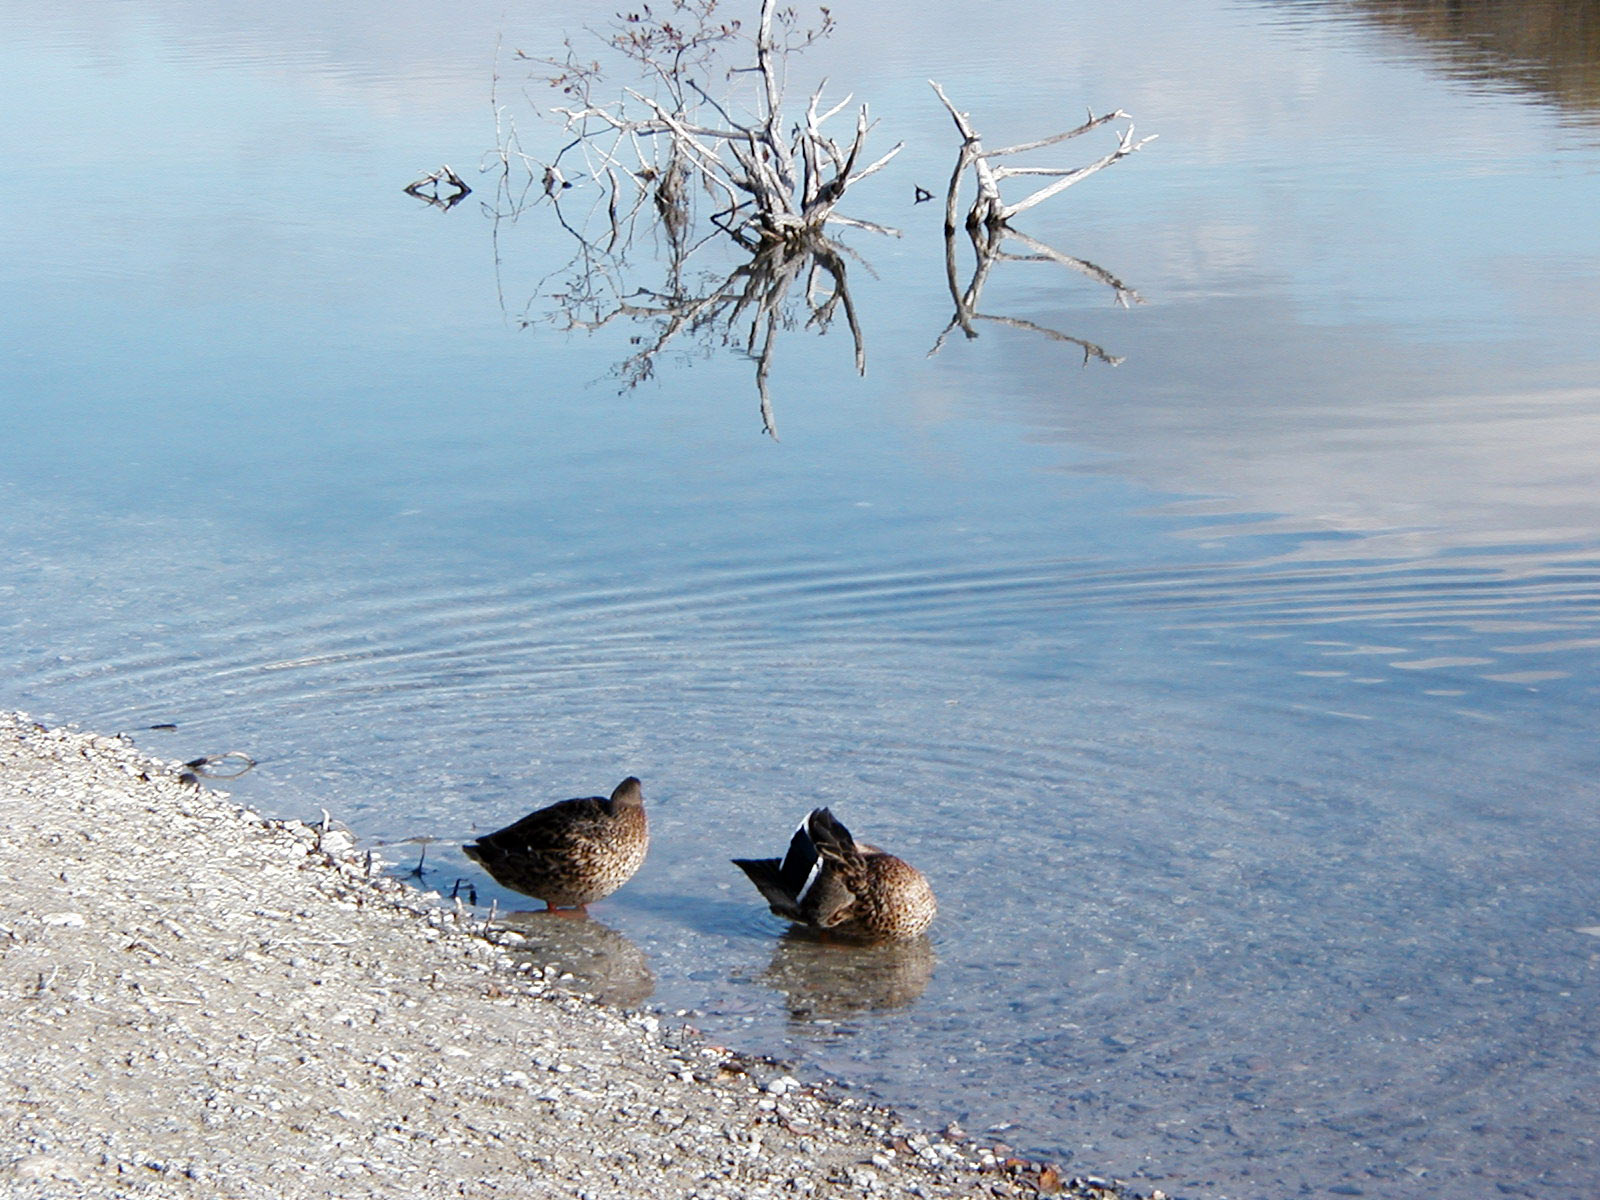 Two ducks by the lake, Branches, Cleaning, Dead, Ducks, HQ Photo